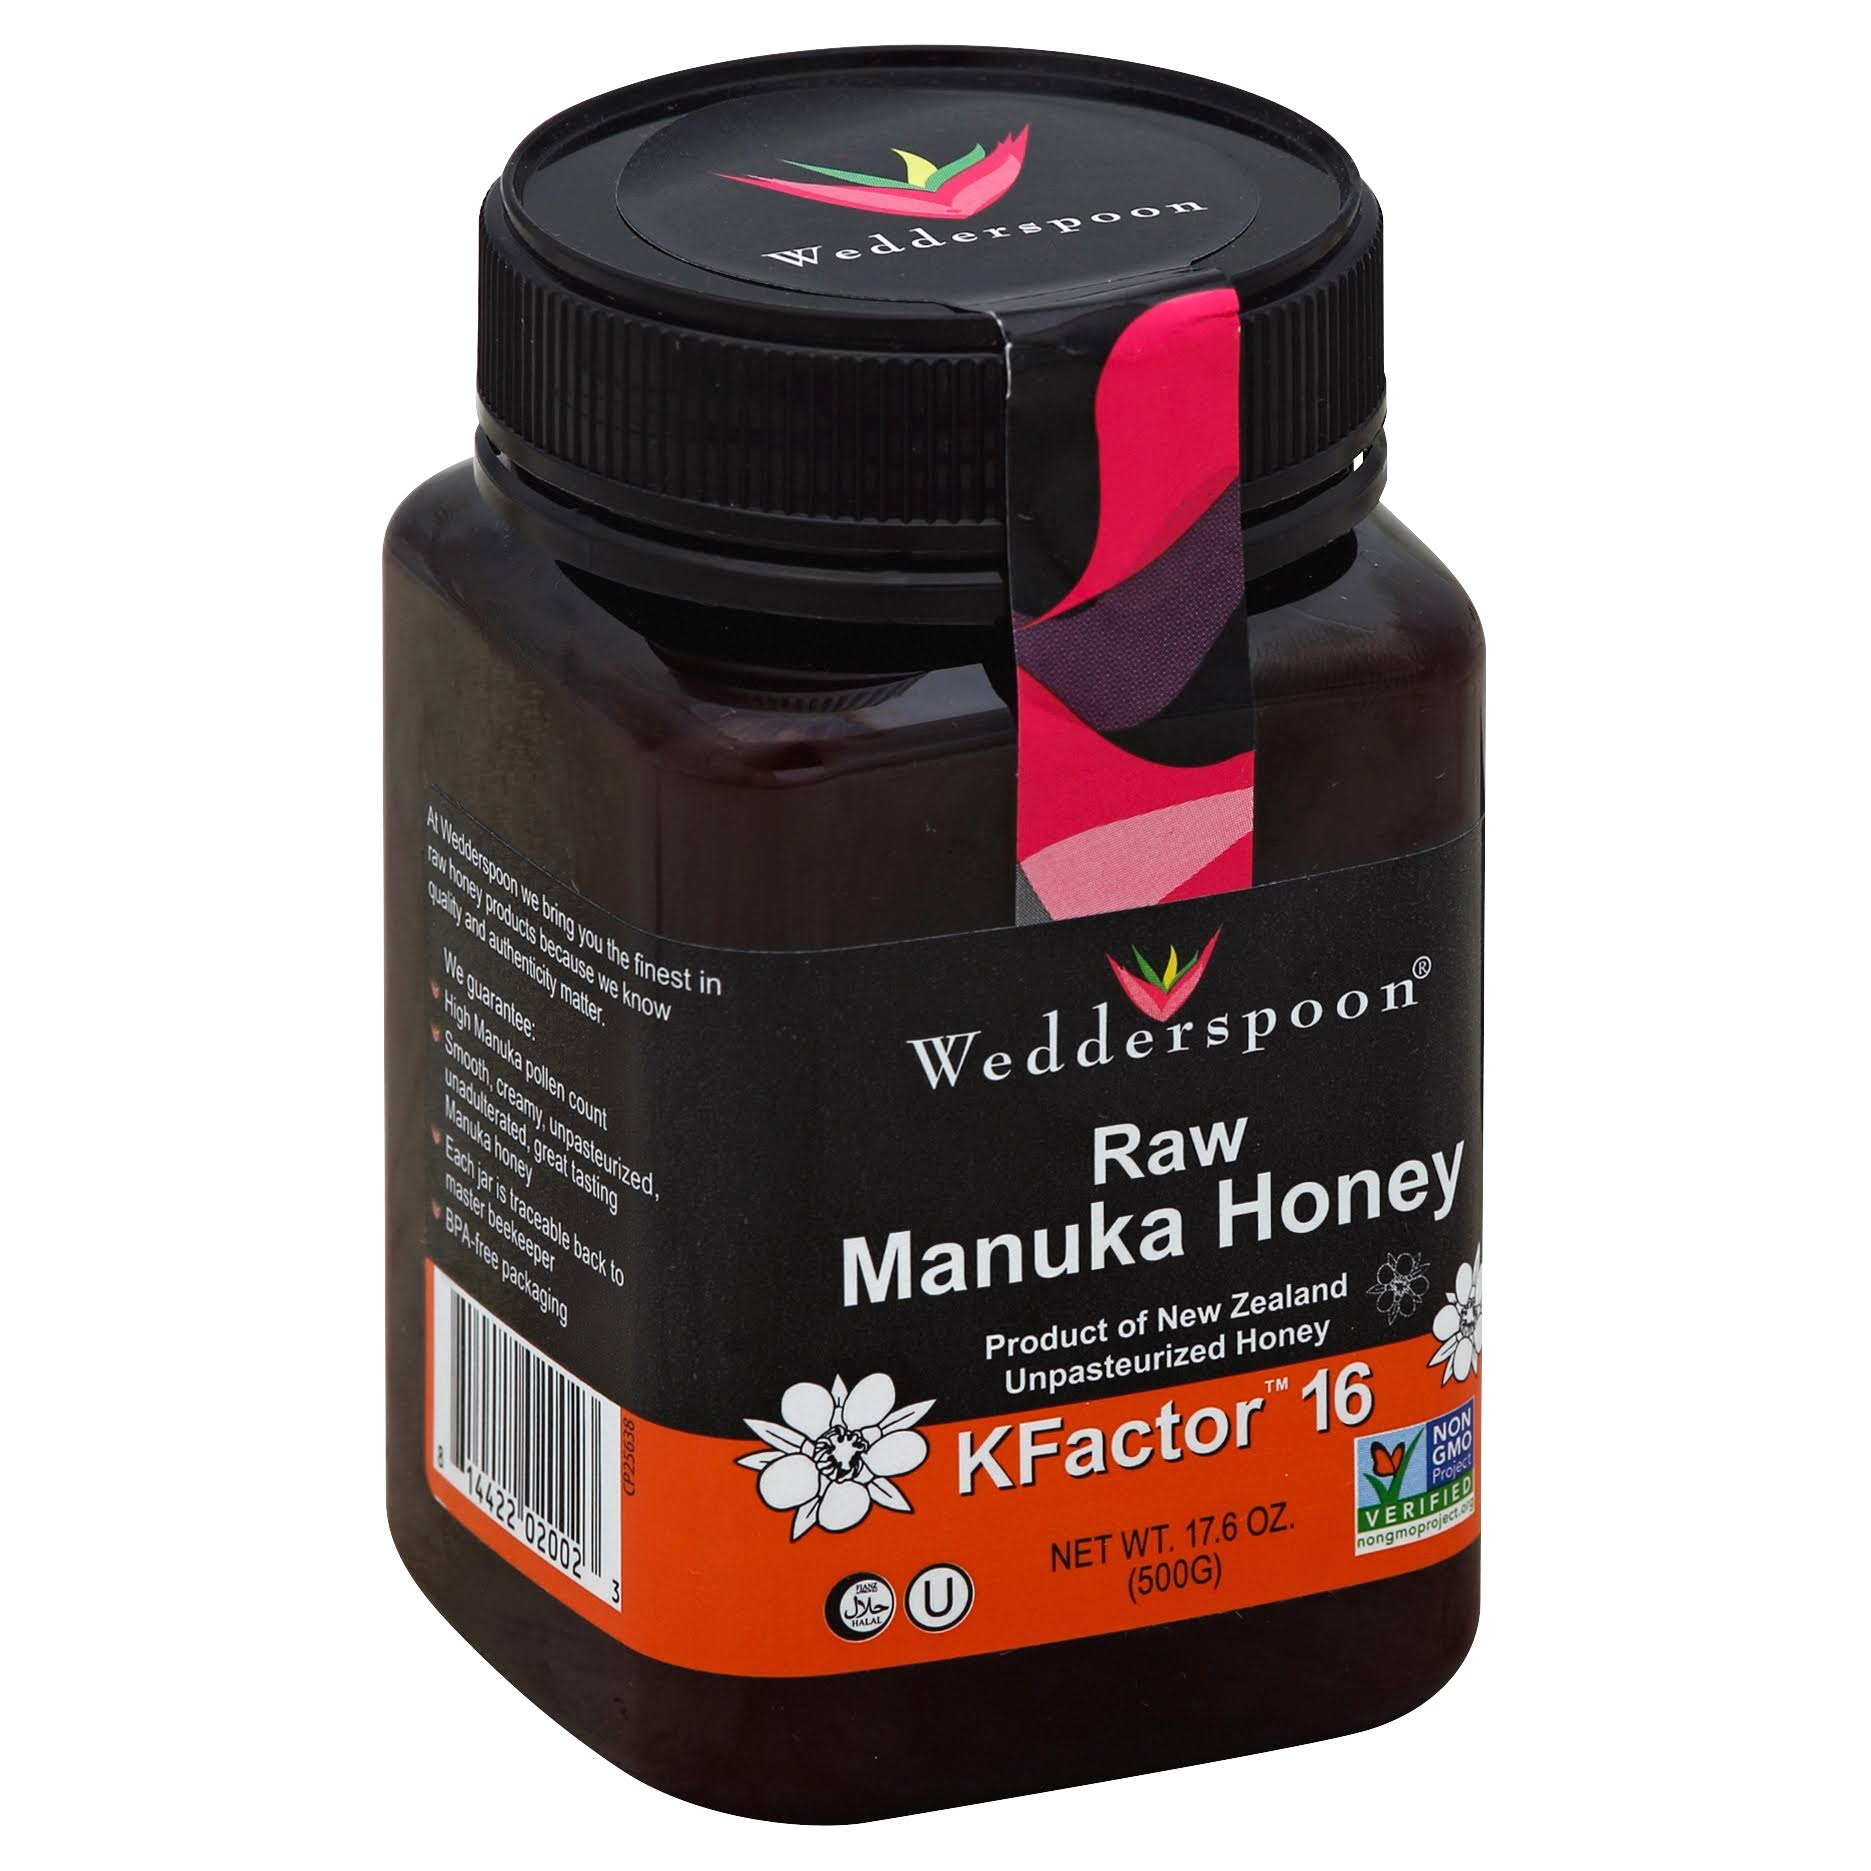 Wedderspoon Manuka Honey - 500g